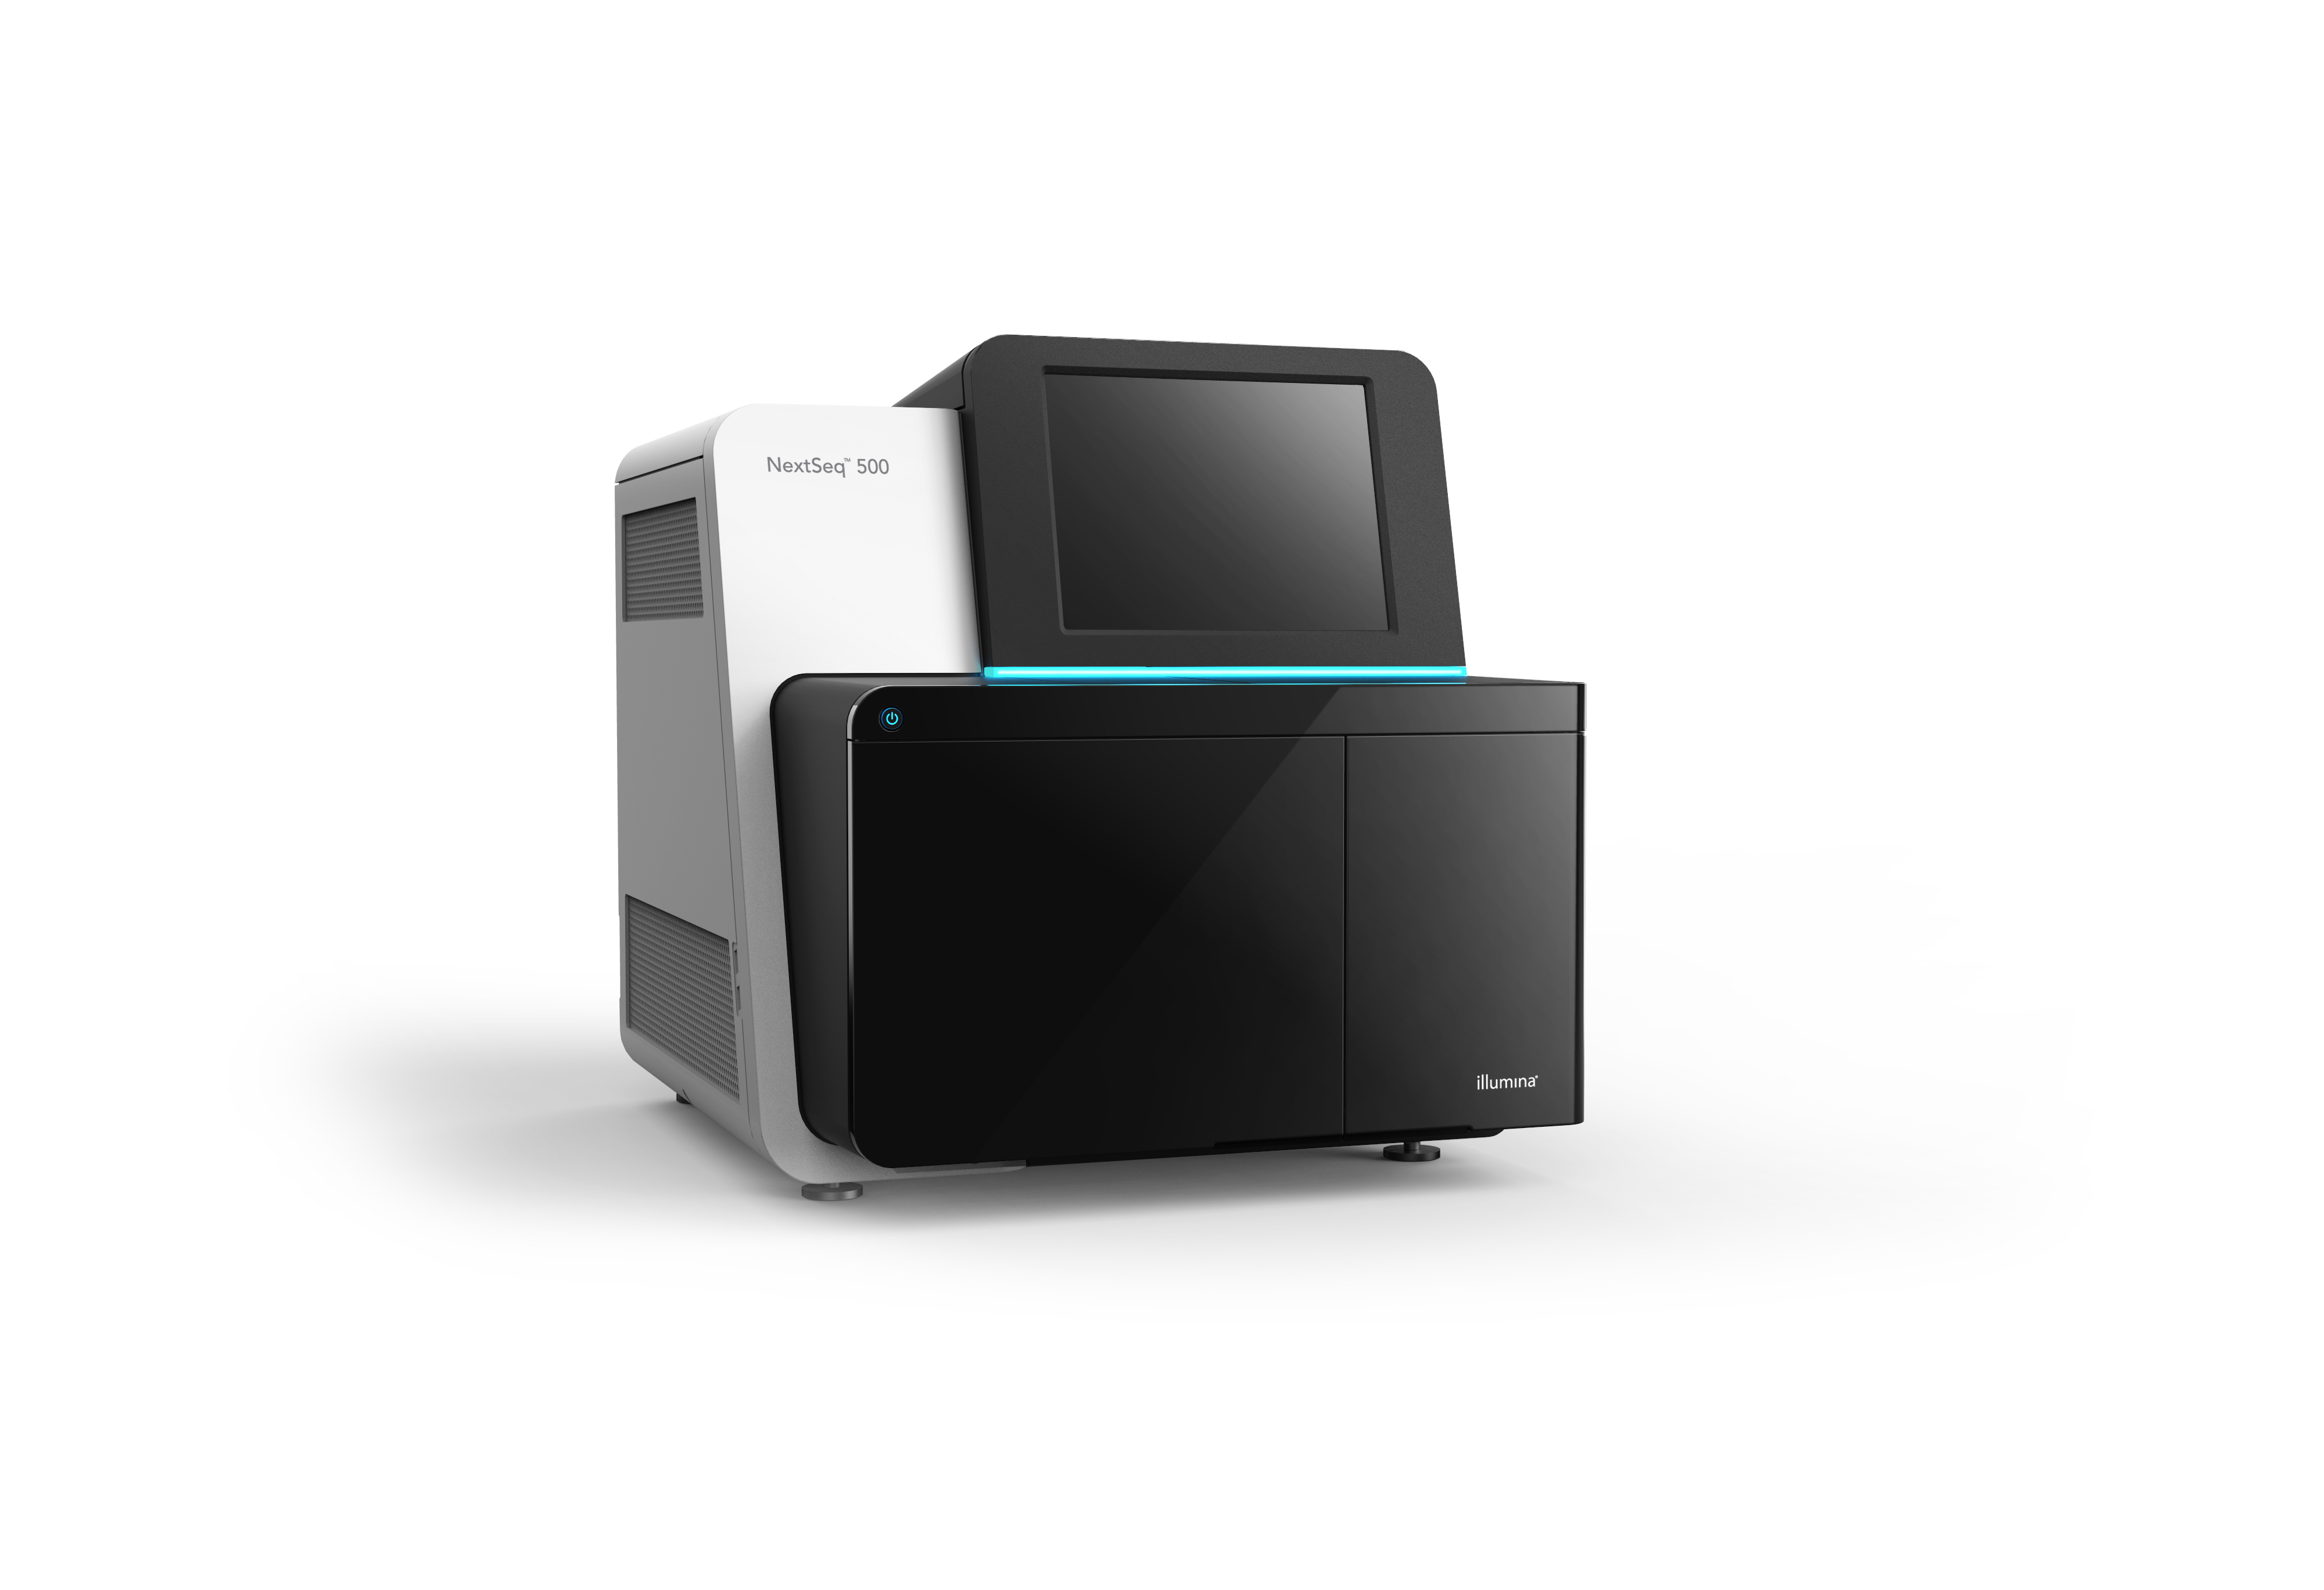 The NextSeq™ 500 System, capable of sequencing a whole human genome in a single run, delivers the power of high-throughput sequencing with the simplicity of a desktop sequencer, enabling everyday genomics. (Photo: Business Wire)